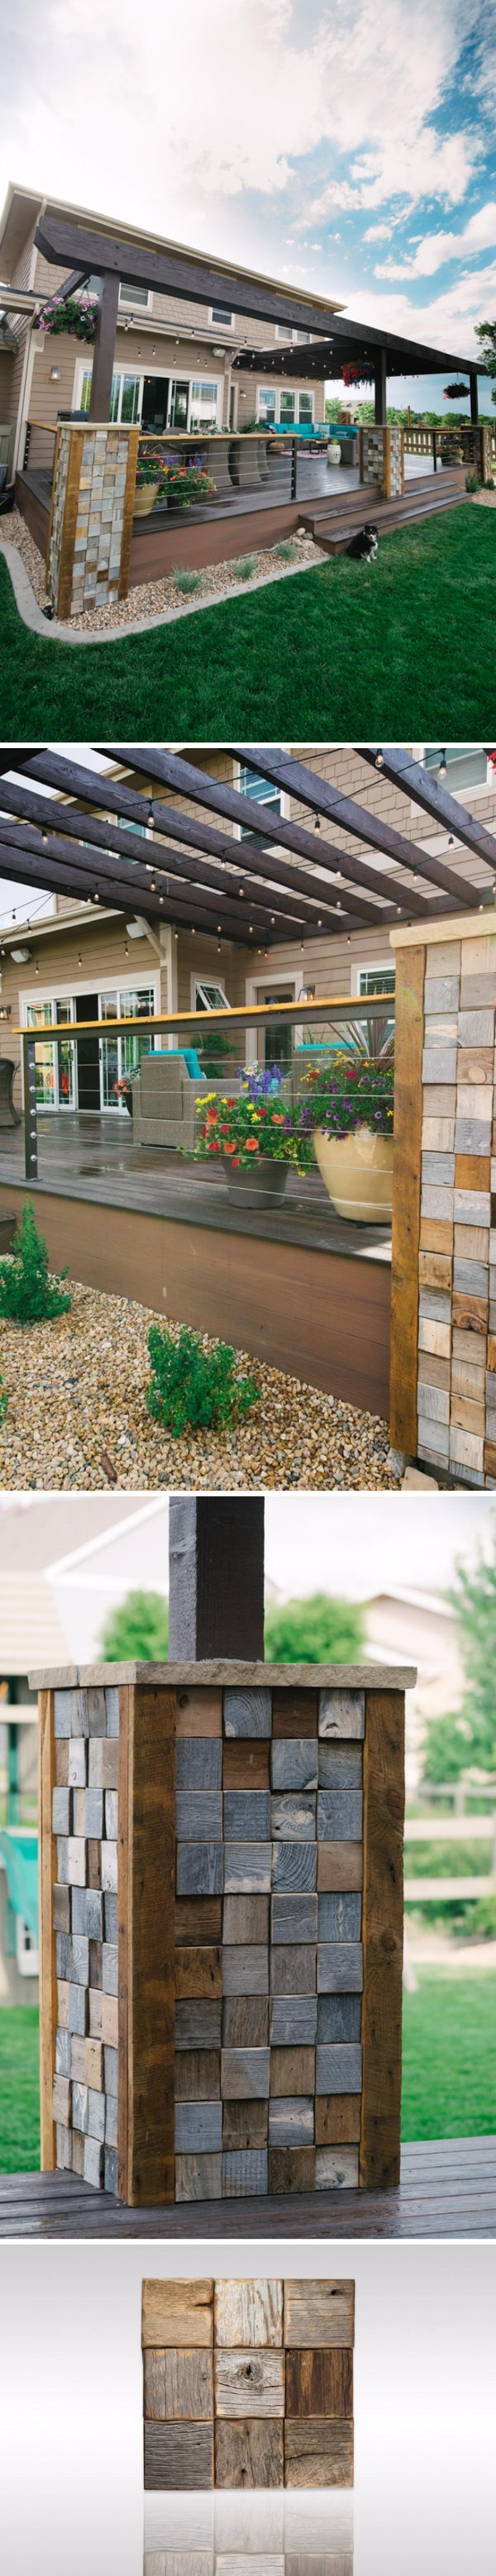 Wrap the Deck Posts with Barn Wood Tiles to Get a Different Look.